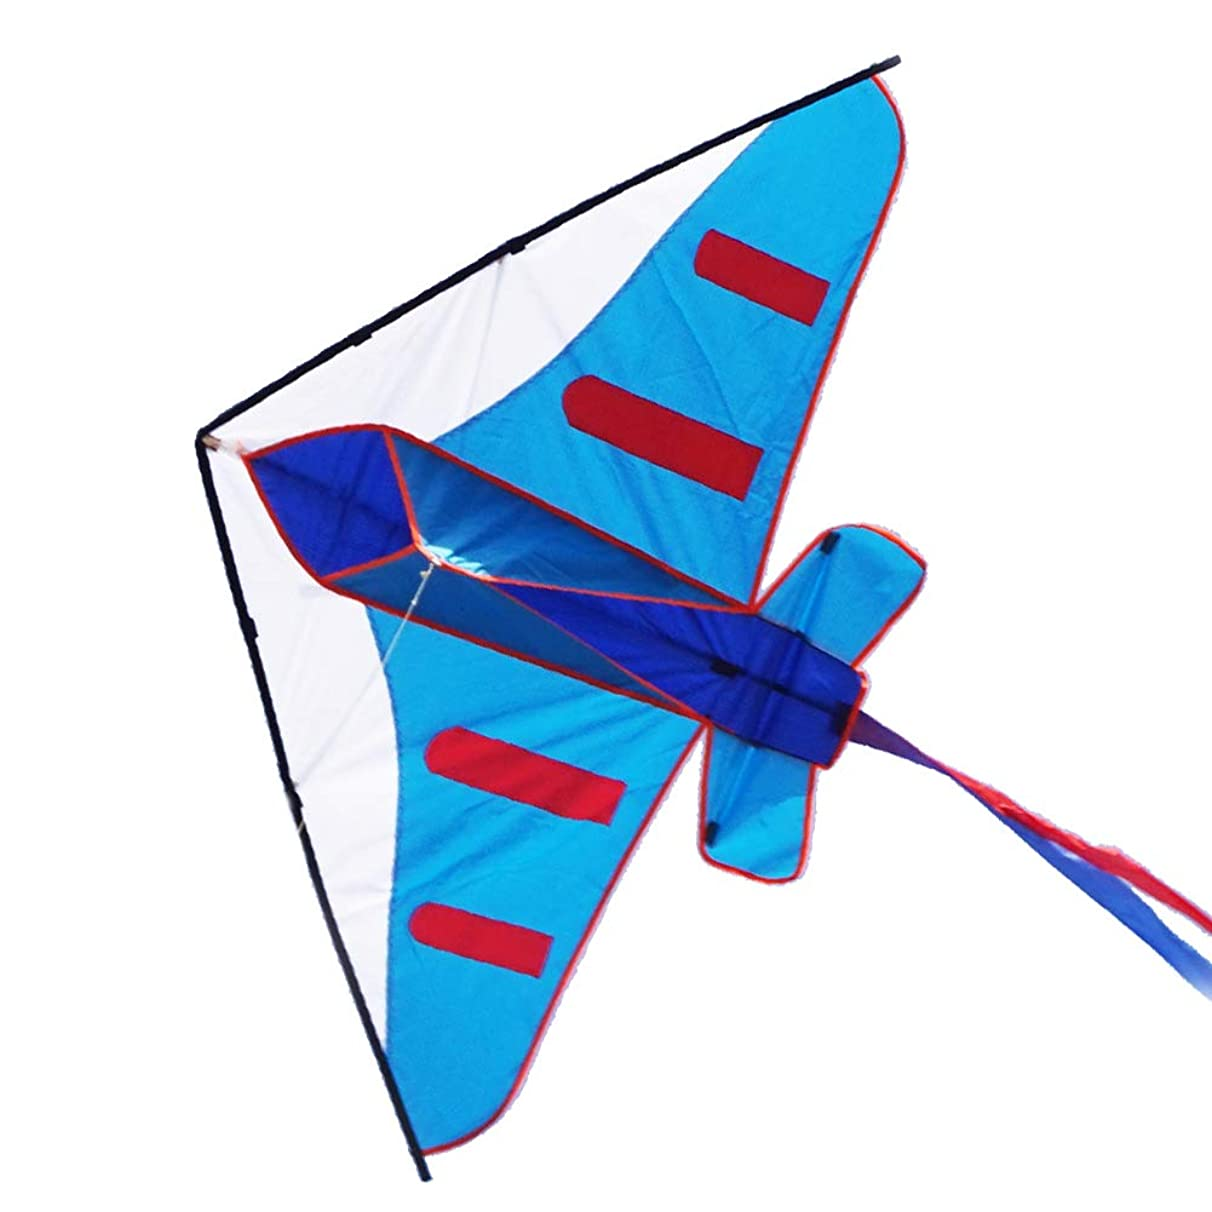 Besra 60inch Colorful Plane Kite Single Line Easy to Fly Aircraft Nylon Kite for Kids & Adults